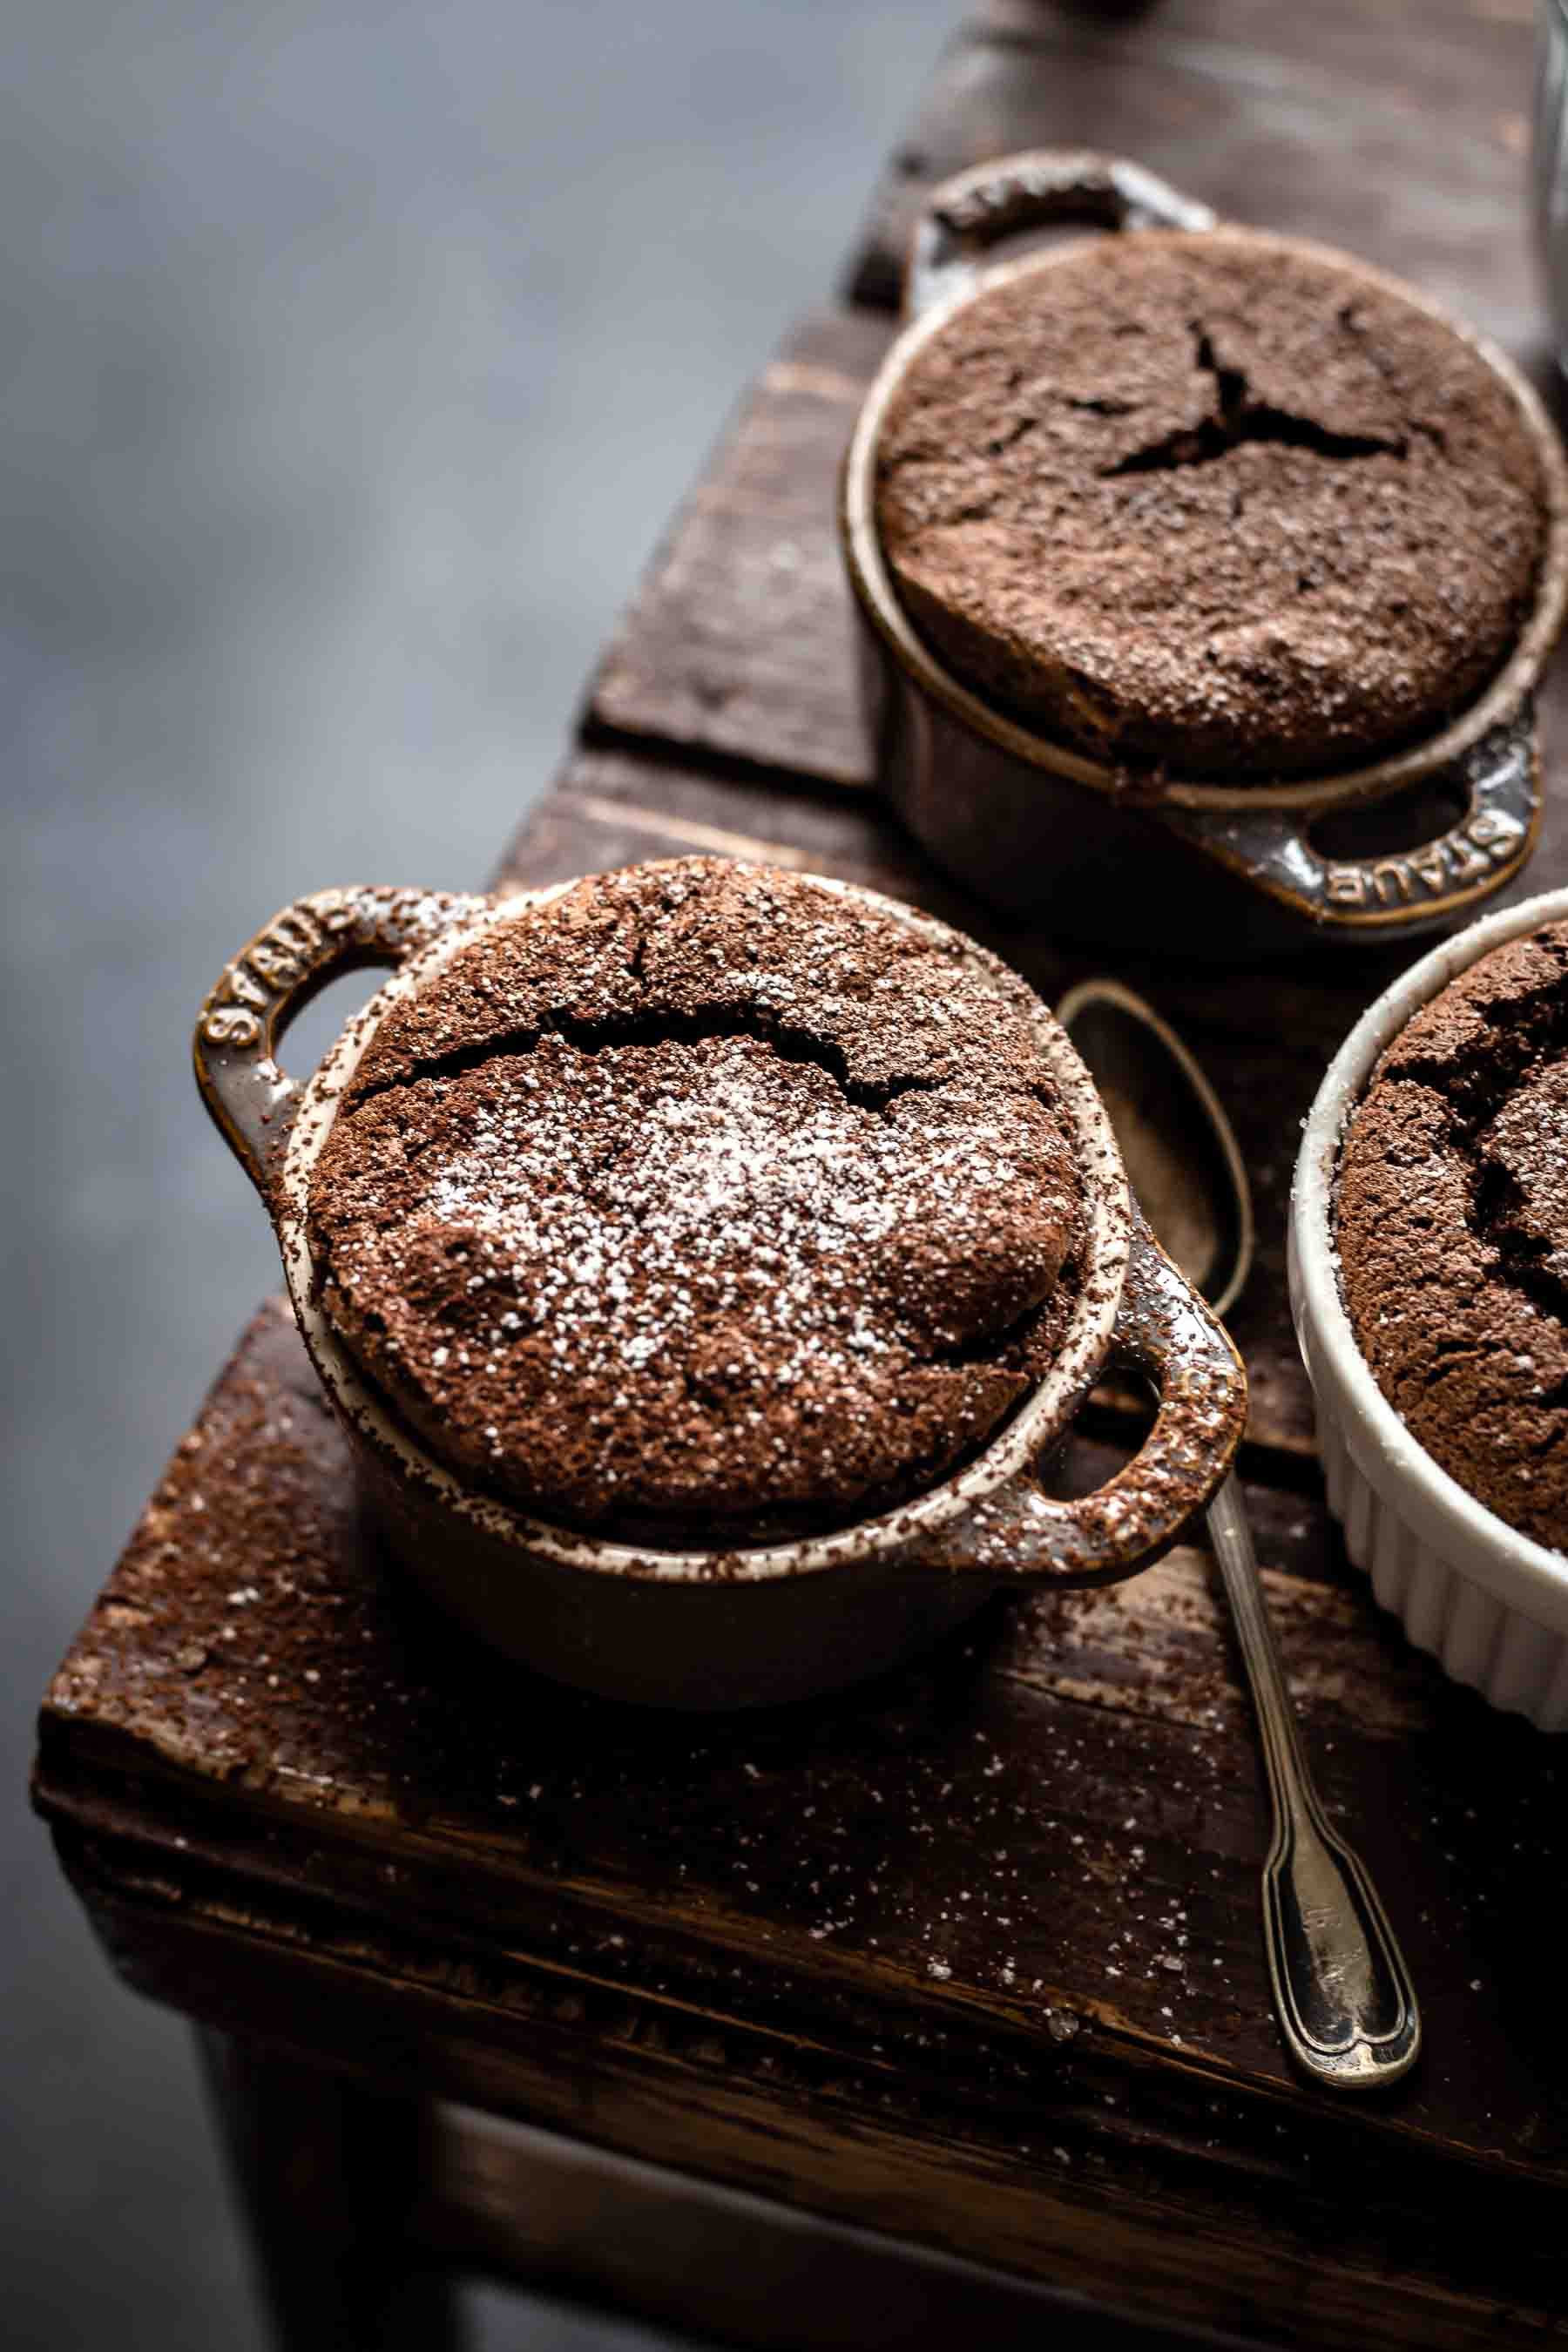 several chocolate souffles ready to eat